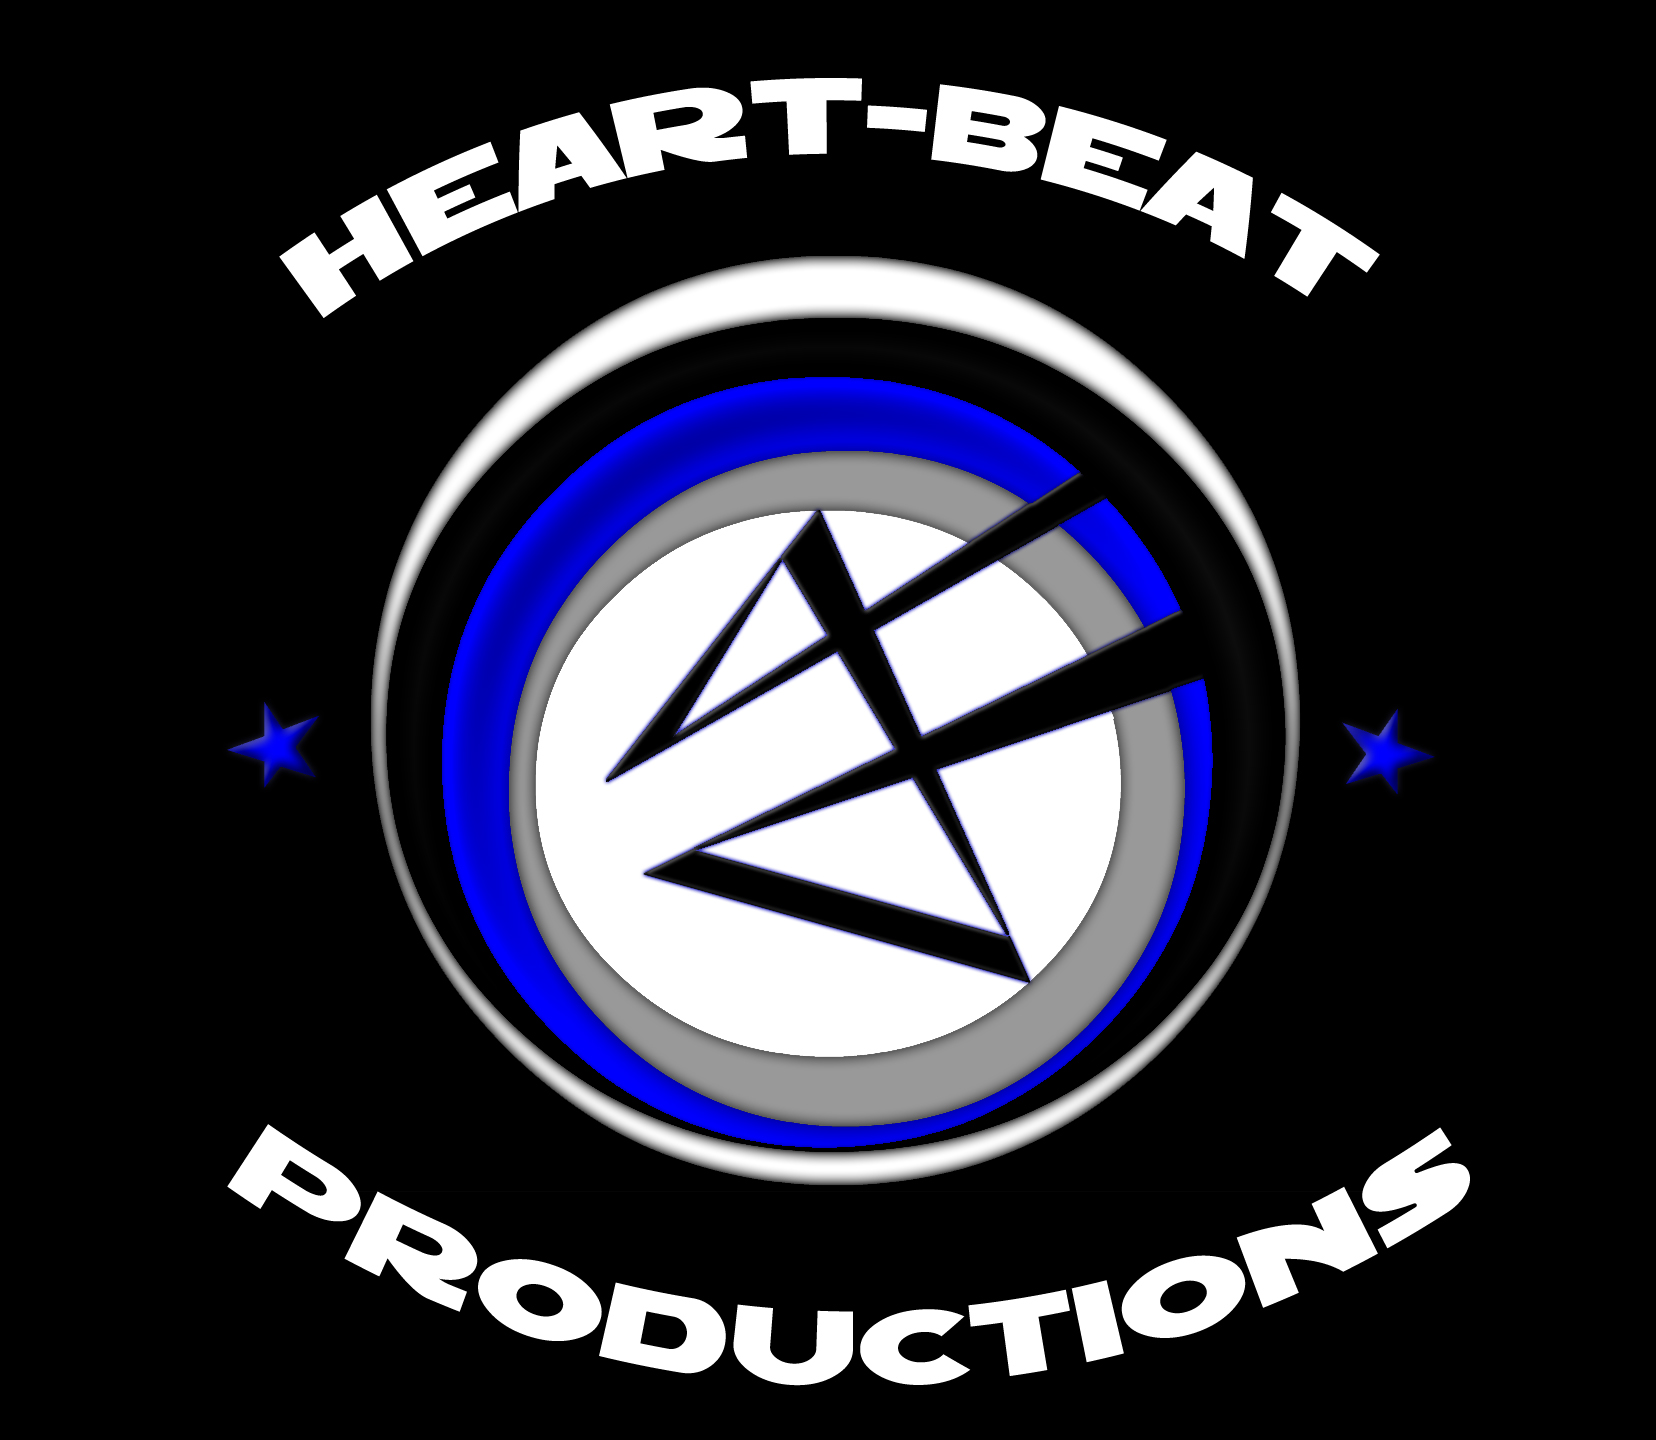 heart-beat productions.jpg